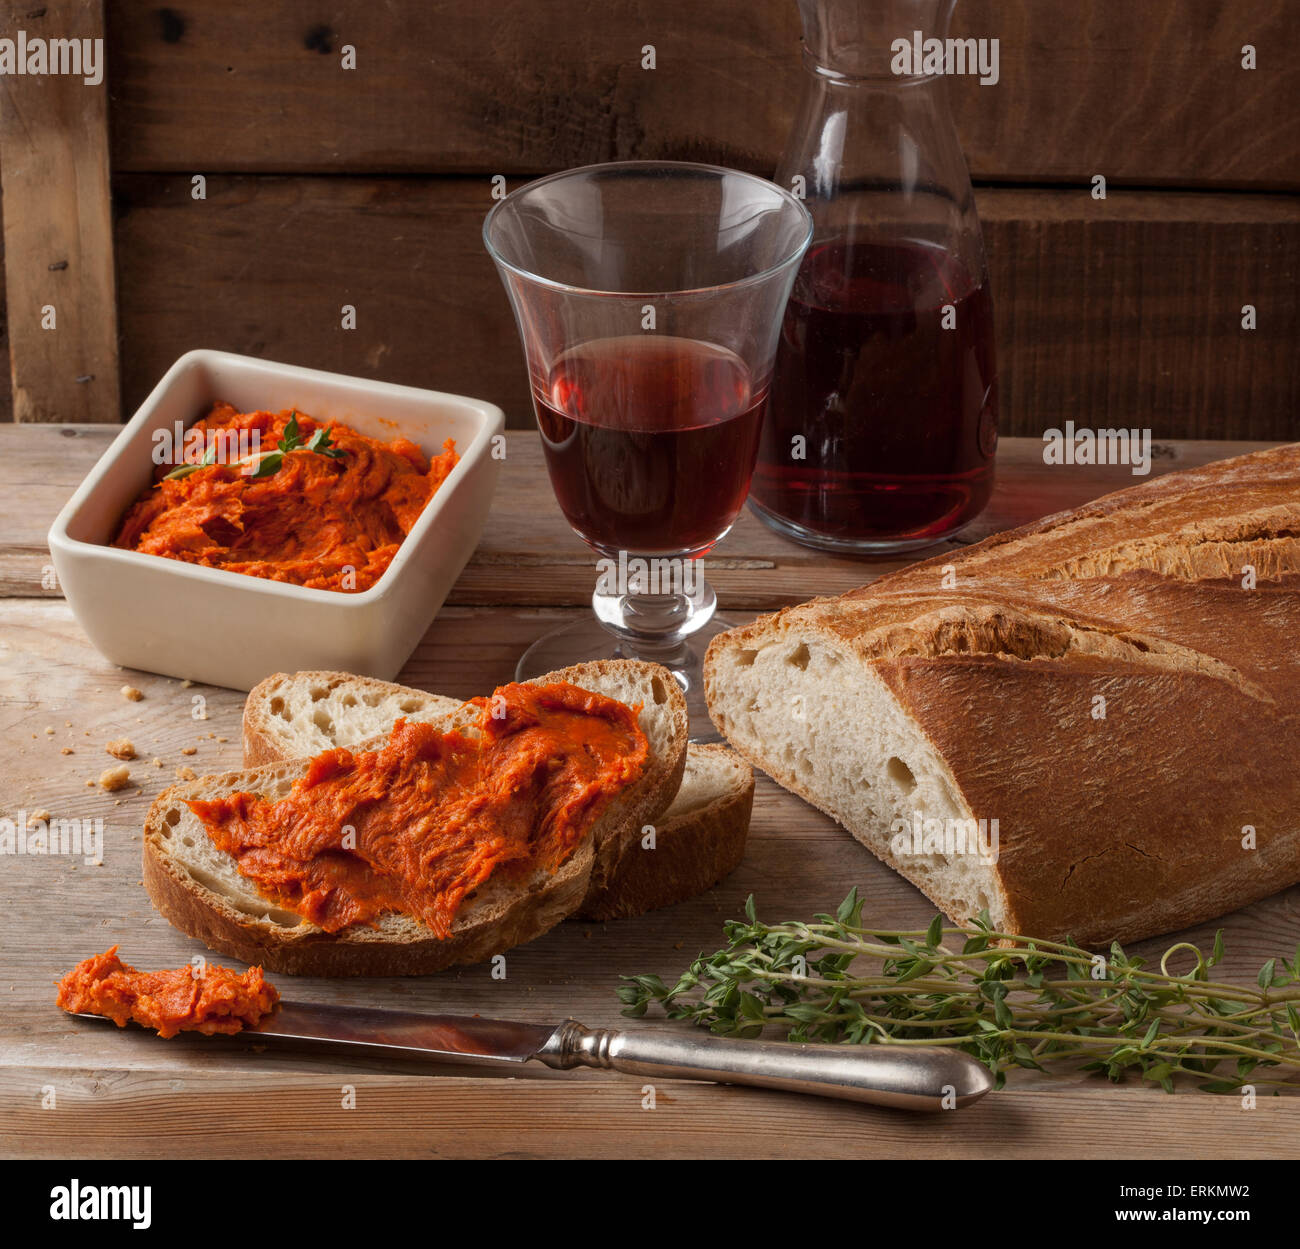 Mediterranean meat spread - Stock Image